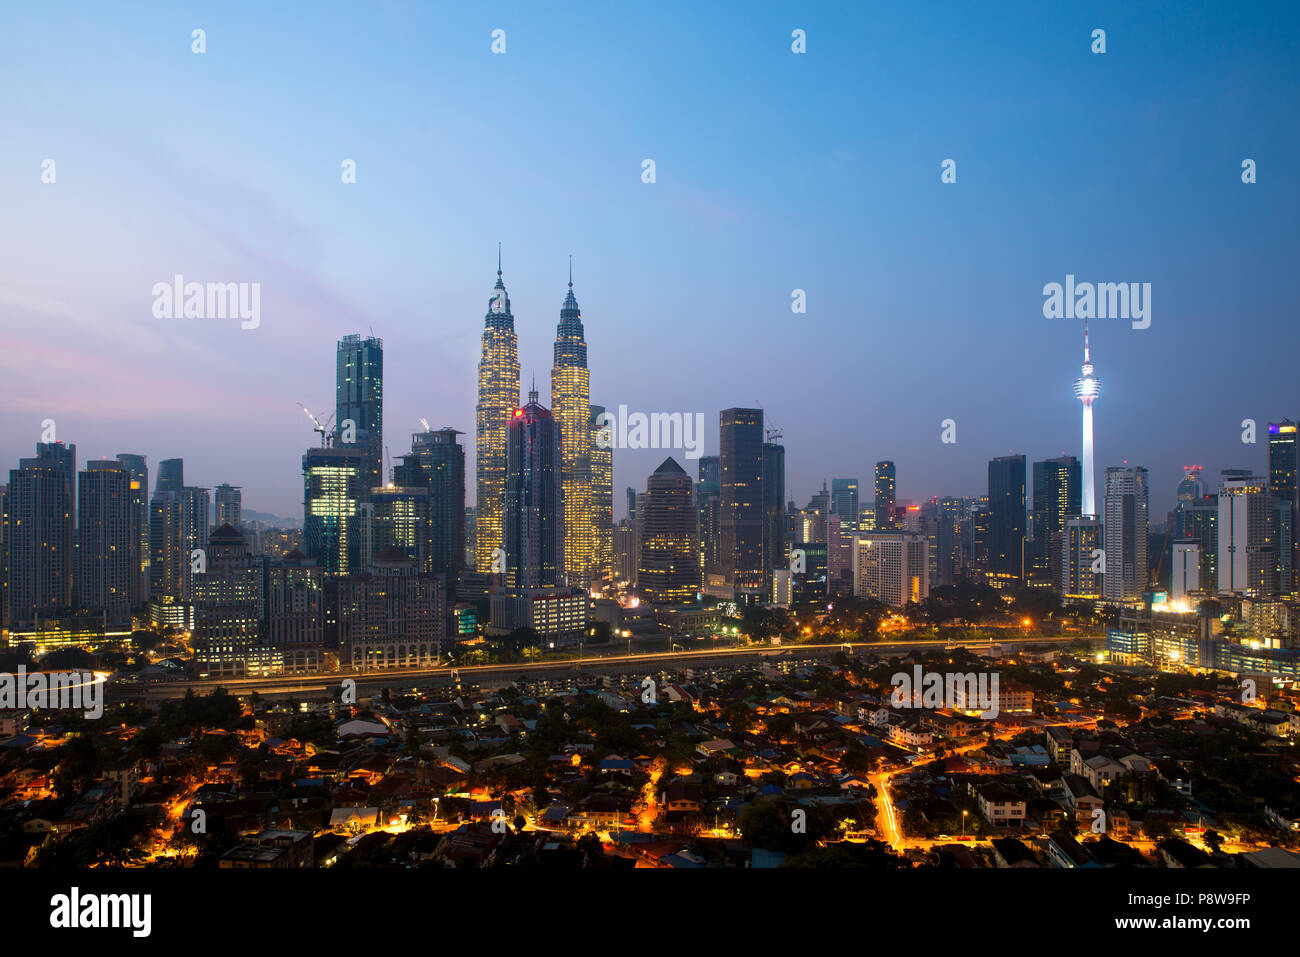 Kuala lumpur cityscape. Panoramic view of Kuala Lumpur city skyline during sunrise viewing skyscrapers building and Petronas twin tower in Malaysia. Stock Photo